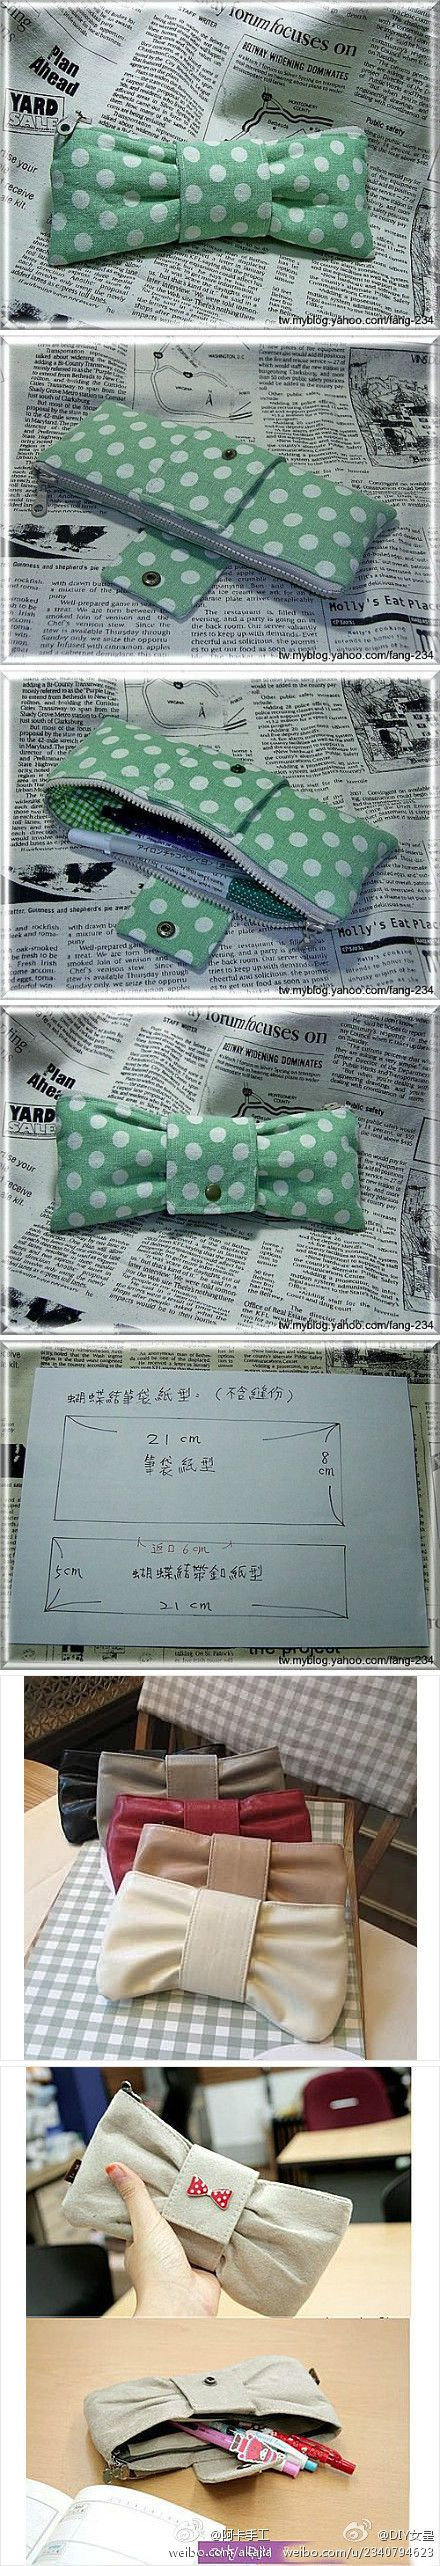 The instructions aren't in English, but I love the design of this classy pencil case!